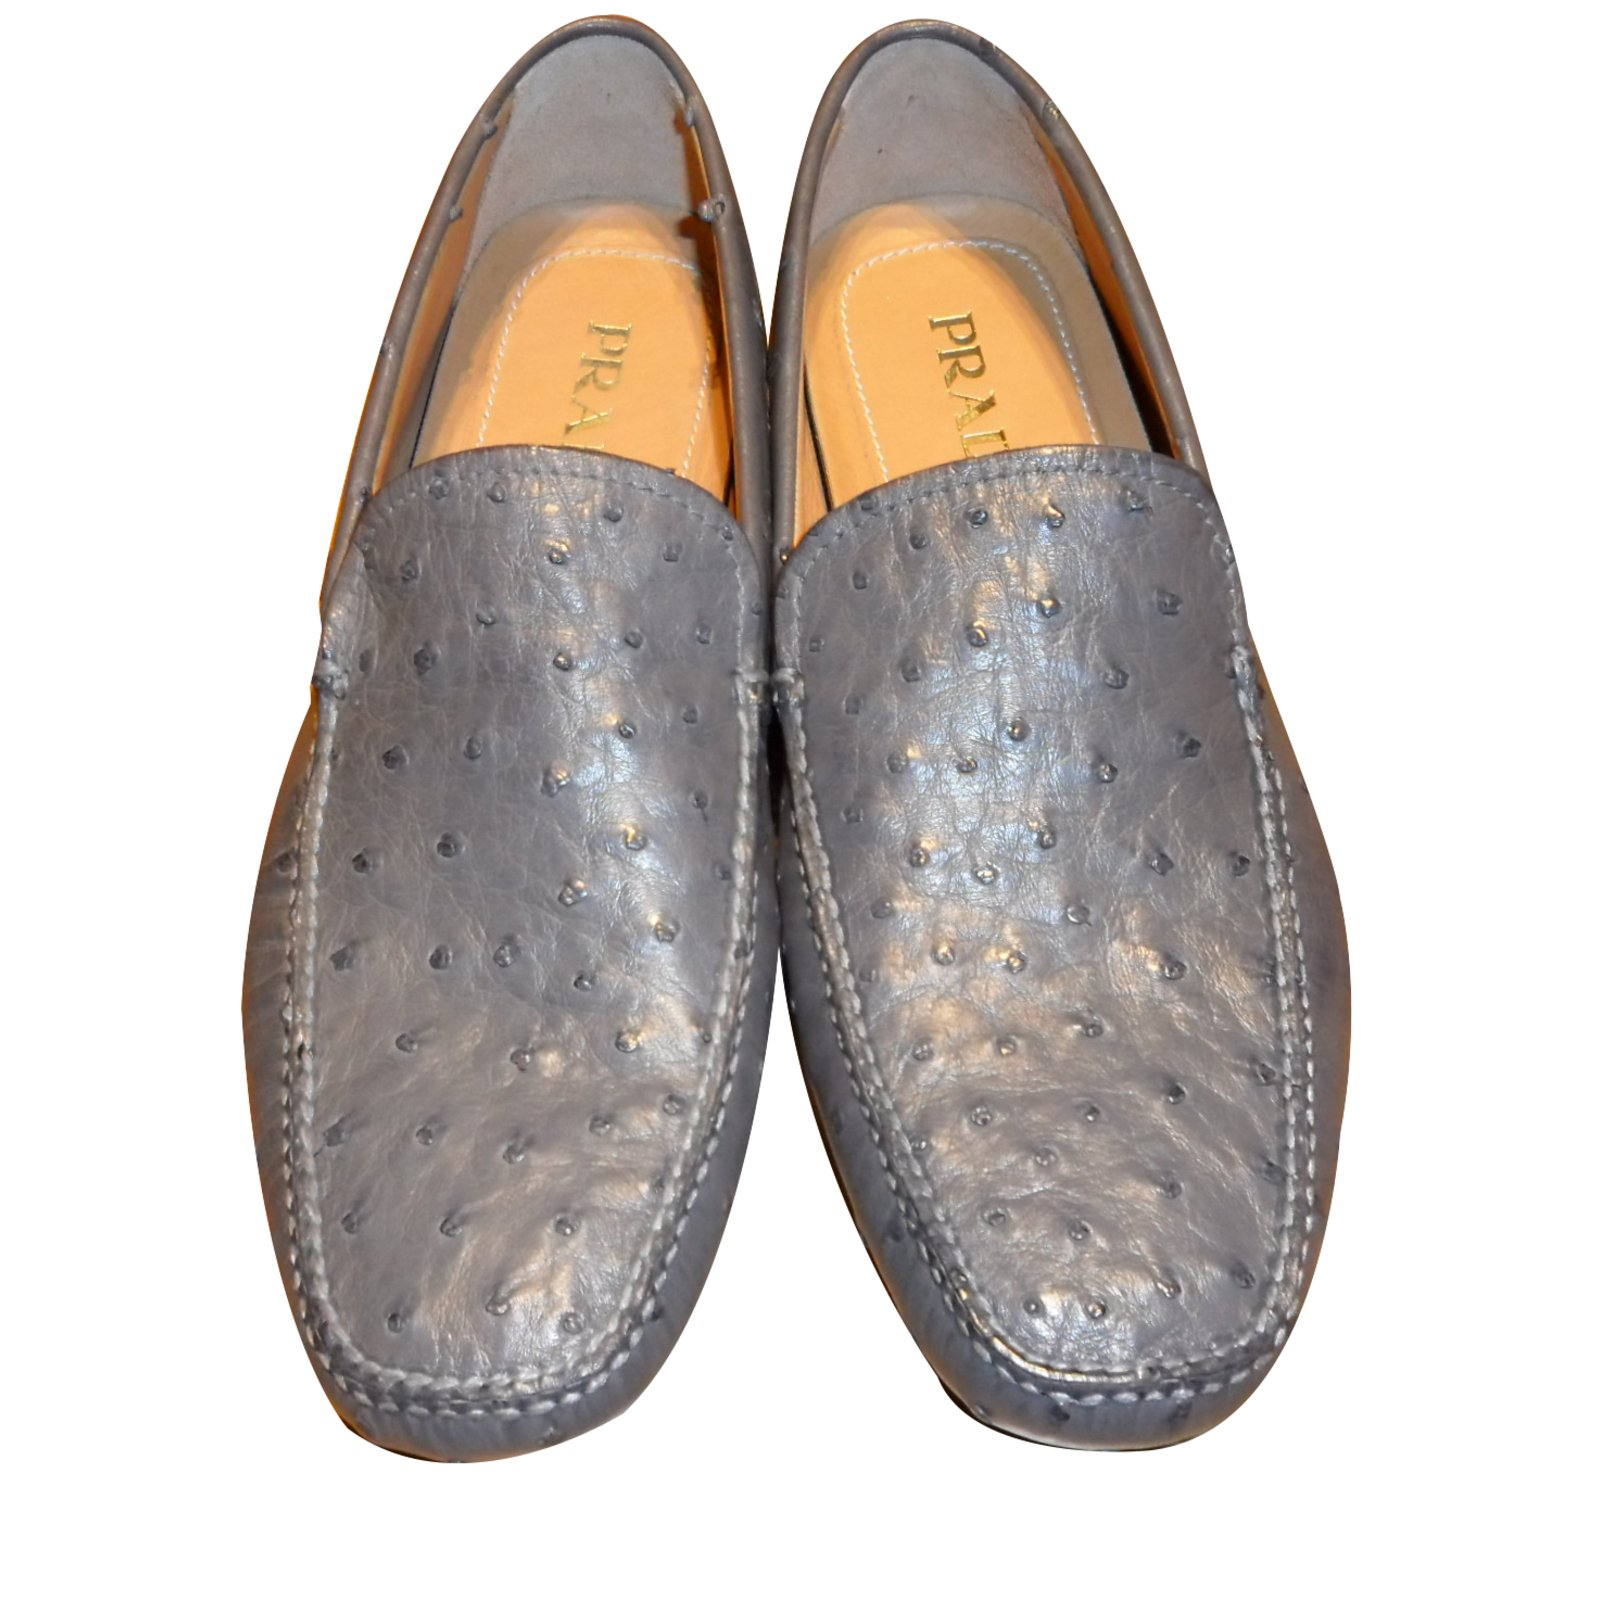 bf1703913a7 Prada PRADA BRAND NEW MEN S OSTRICH LEATHER DRIVING SHOES Loafers Slip ons  Other Grey ref.